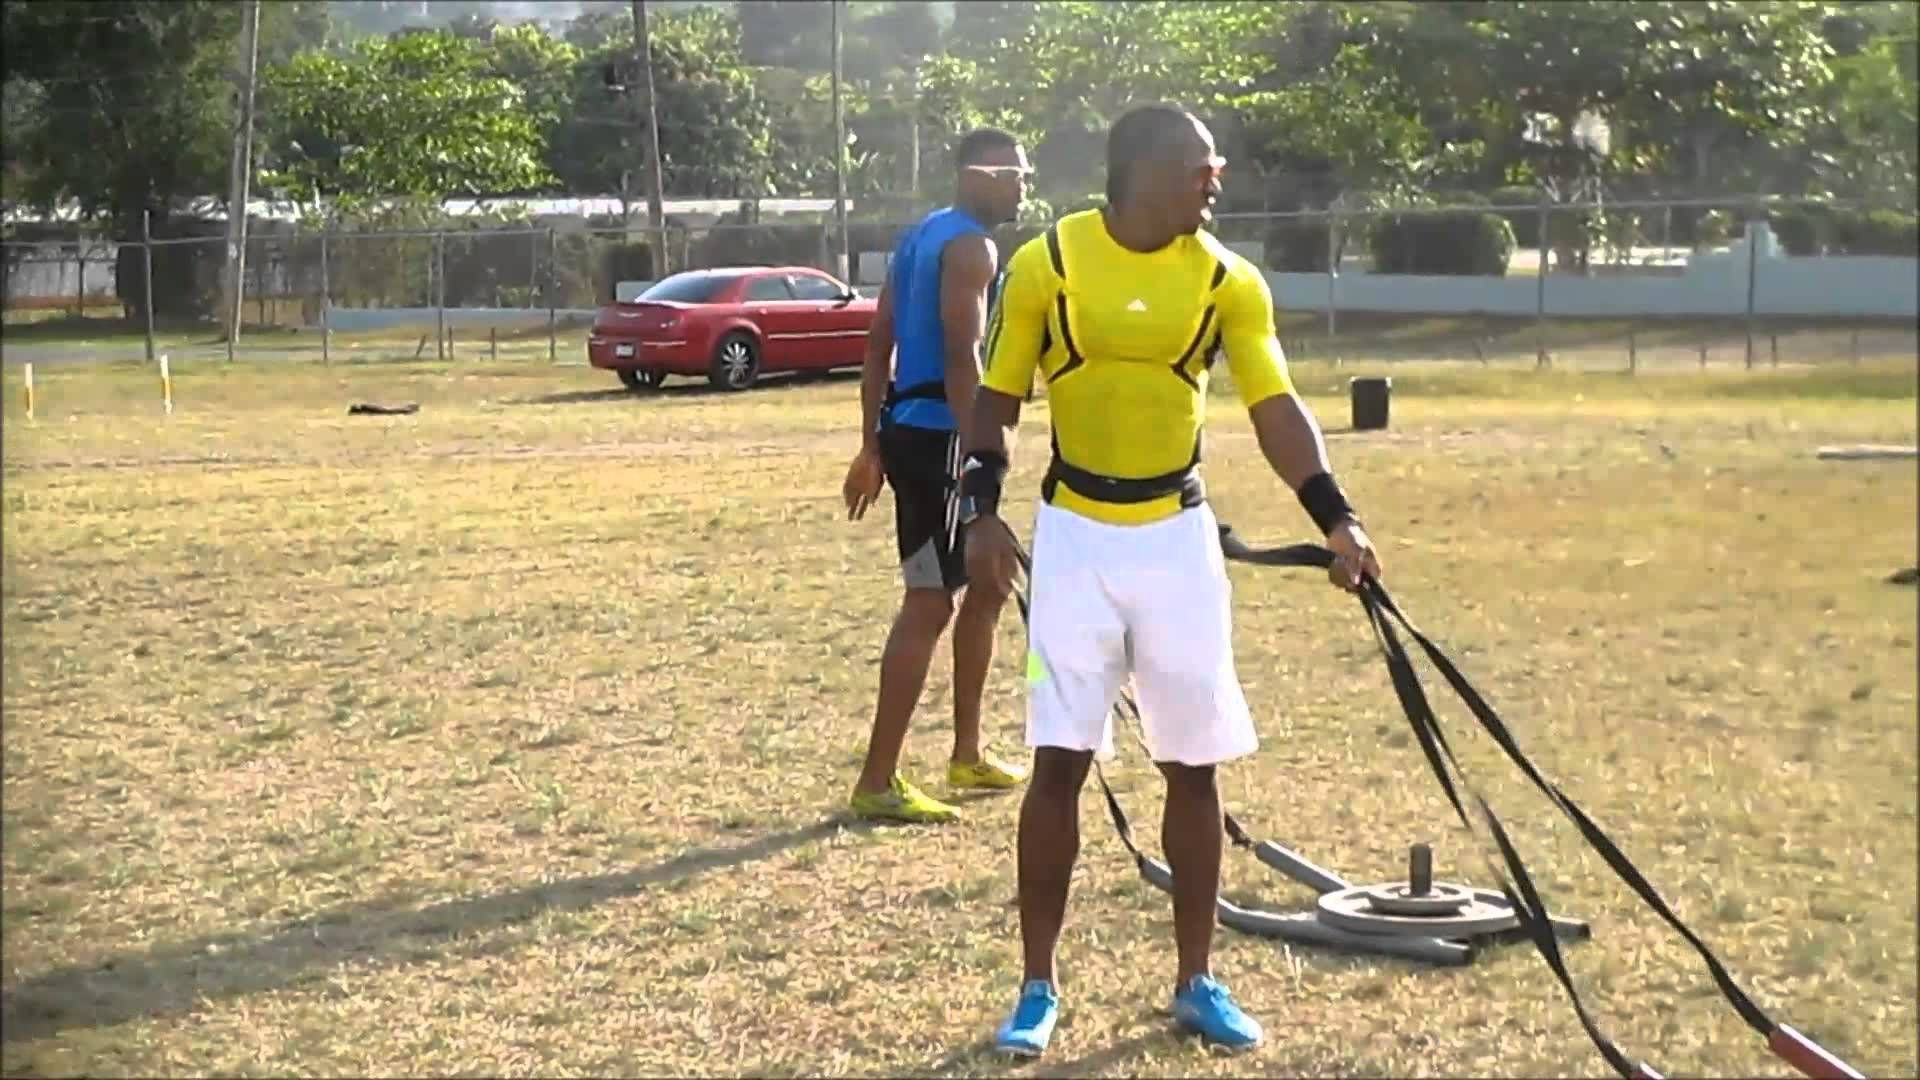 Yohan Blake And Warren Weir Workout Clips (With images) | Workout, Clips, Fitness